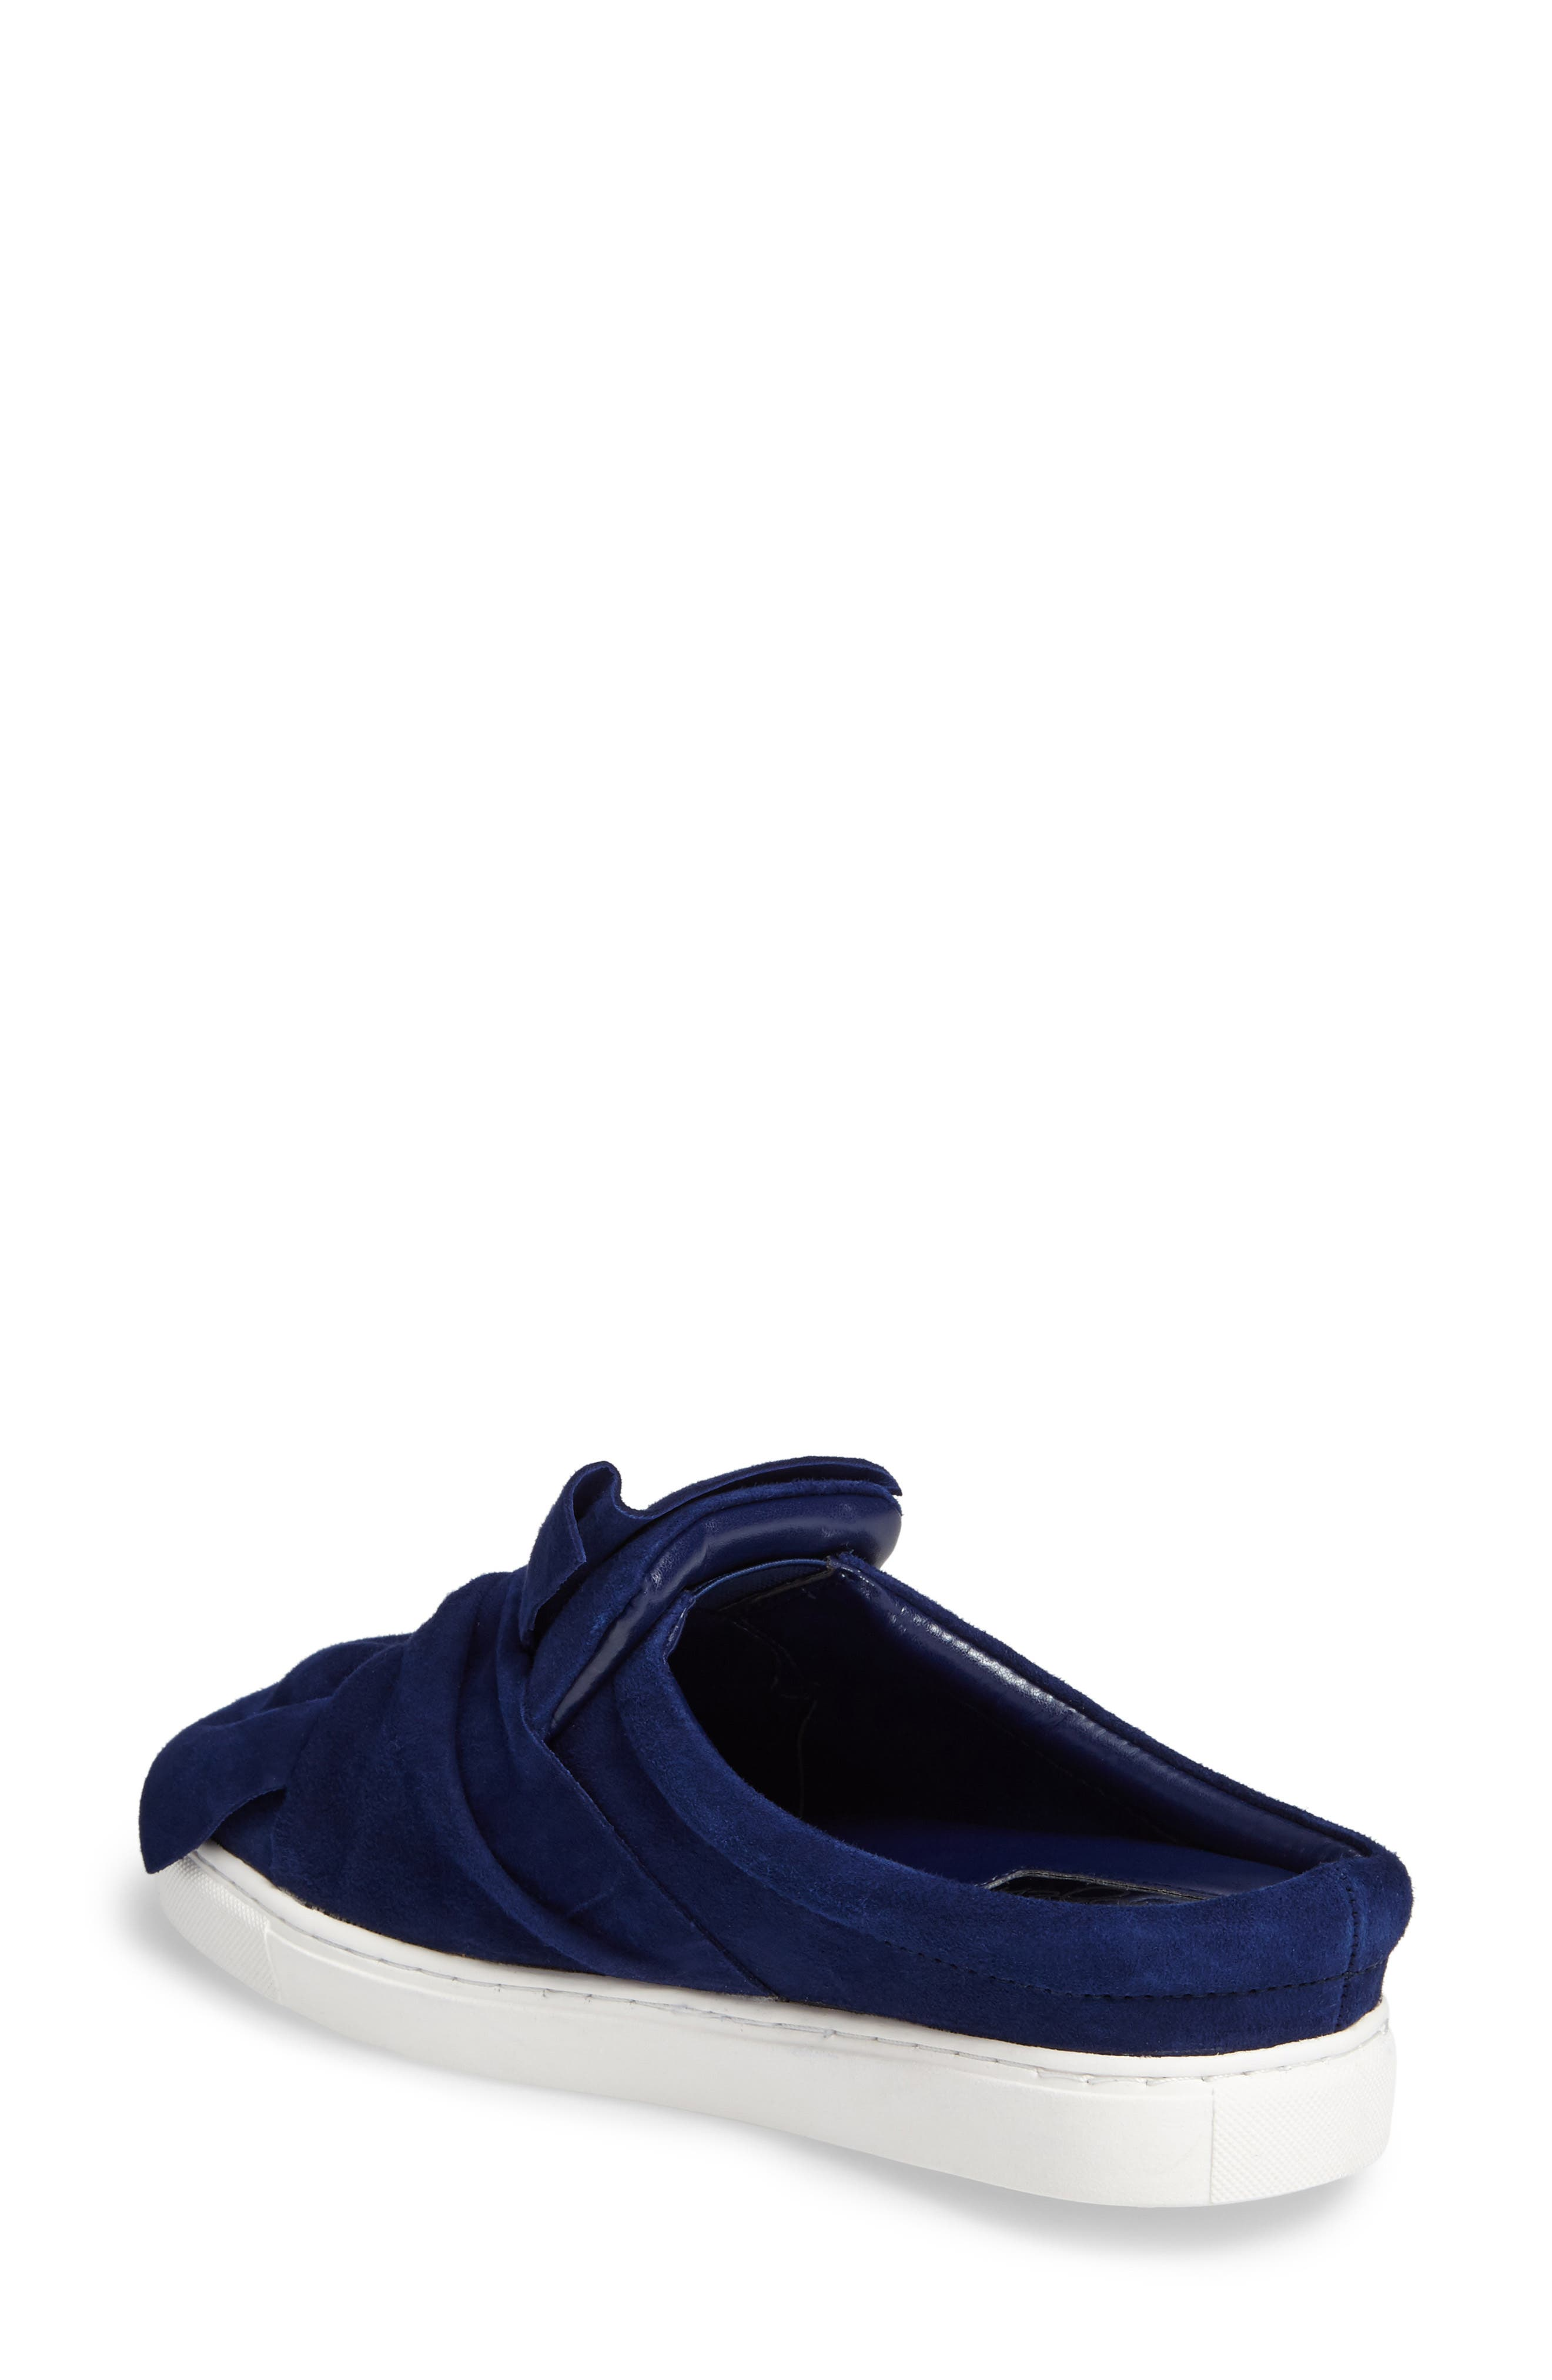 Alternate Image 2  - Halogen® Manny Knotted Slip-On Sneaker (Women)